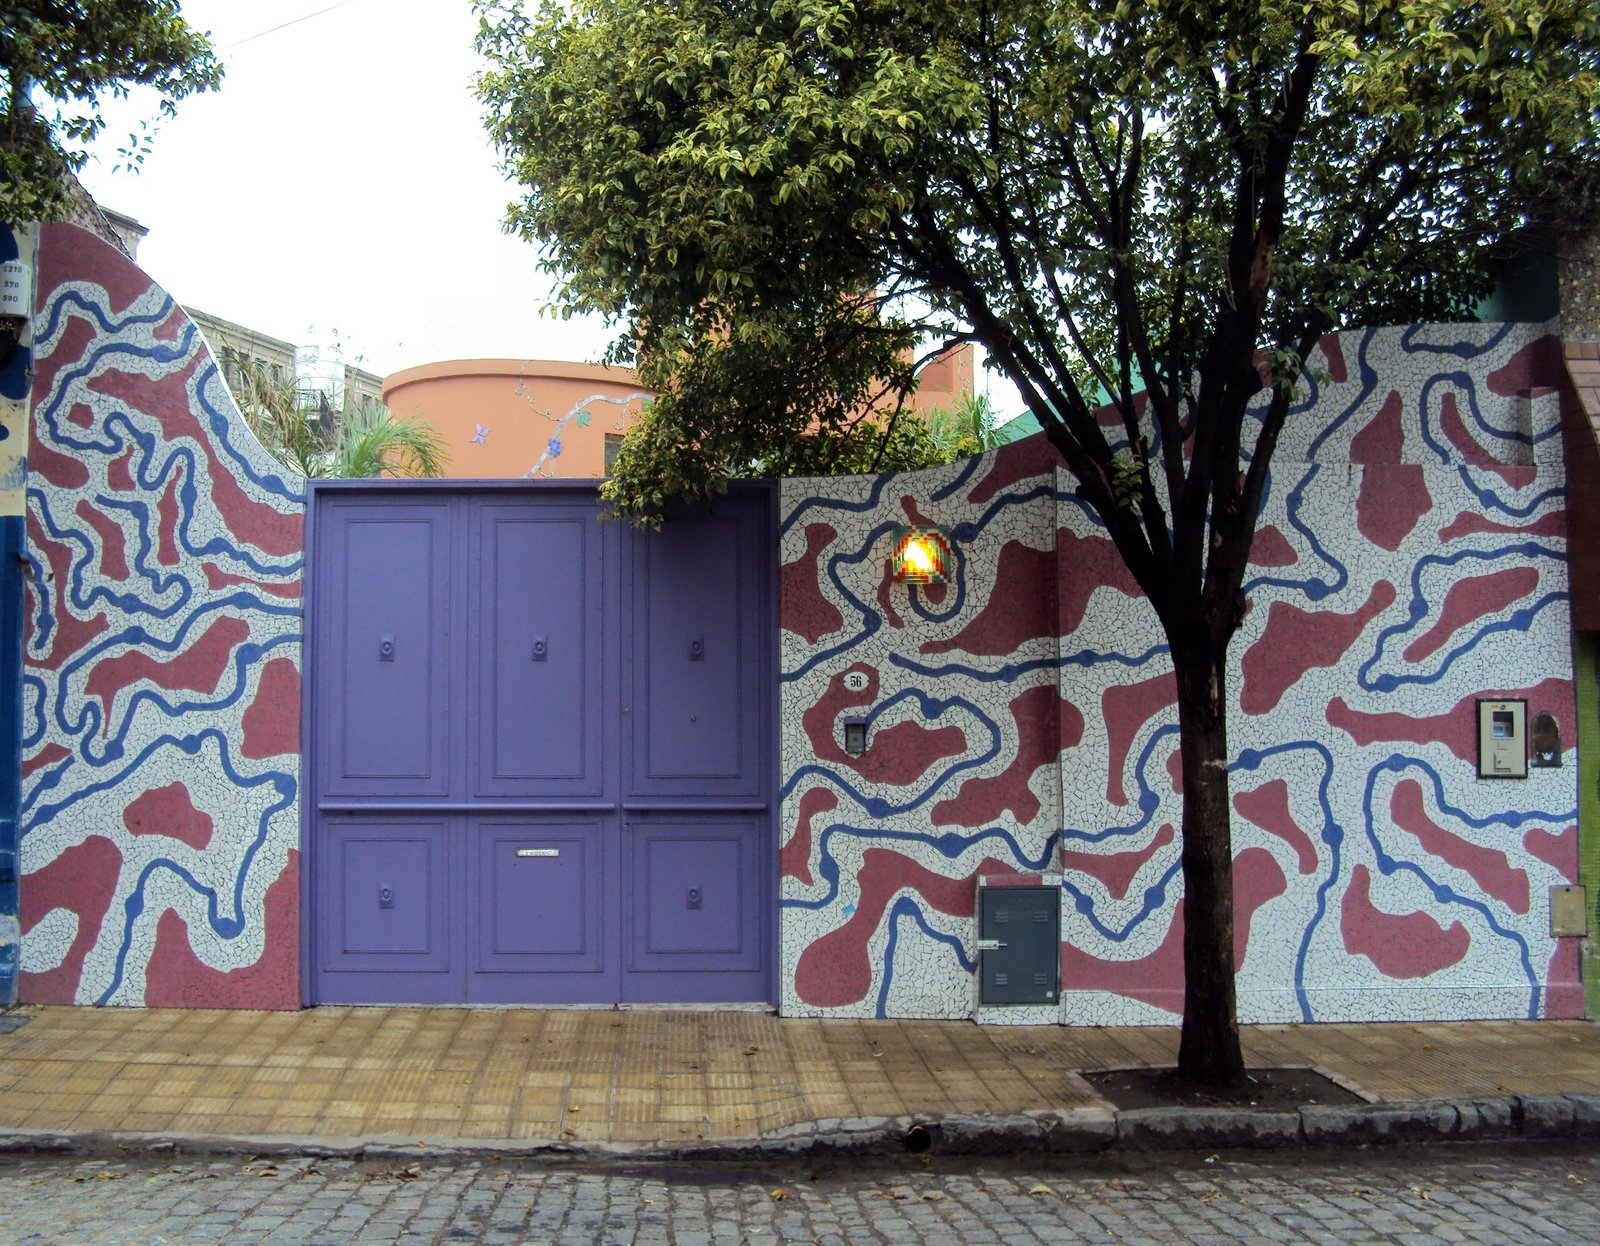 Exterior Barracas has been recognized as Buenos Aires District of Design due to its concentration of creatives.  color from Discover One of the Most Colorful Streets in Buenos Aires